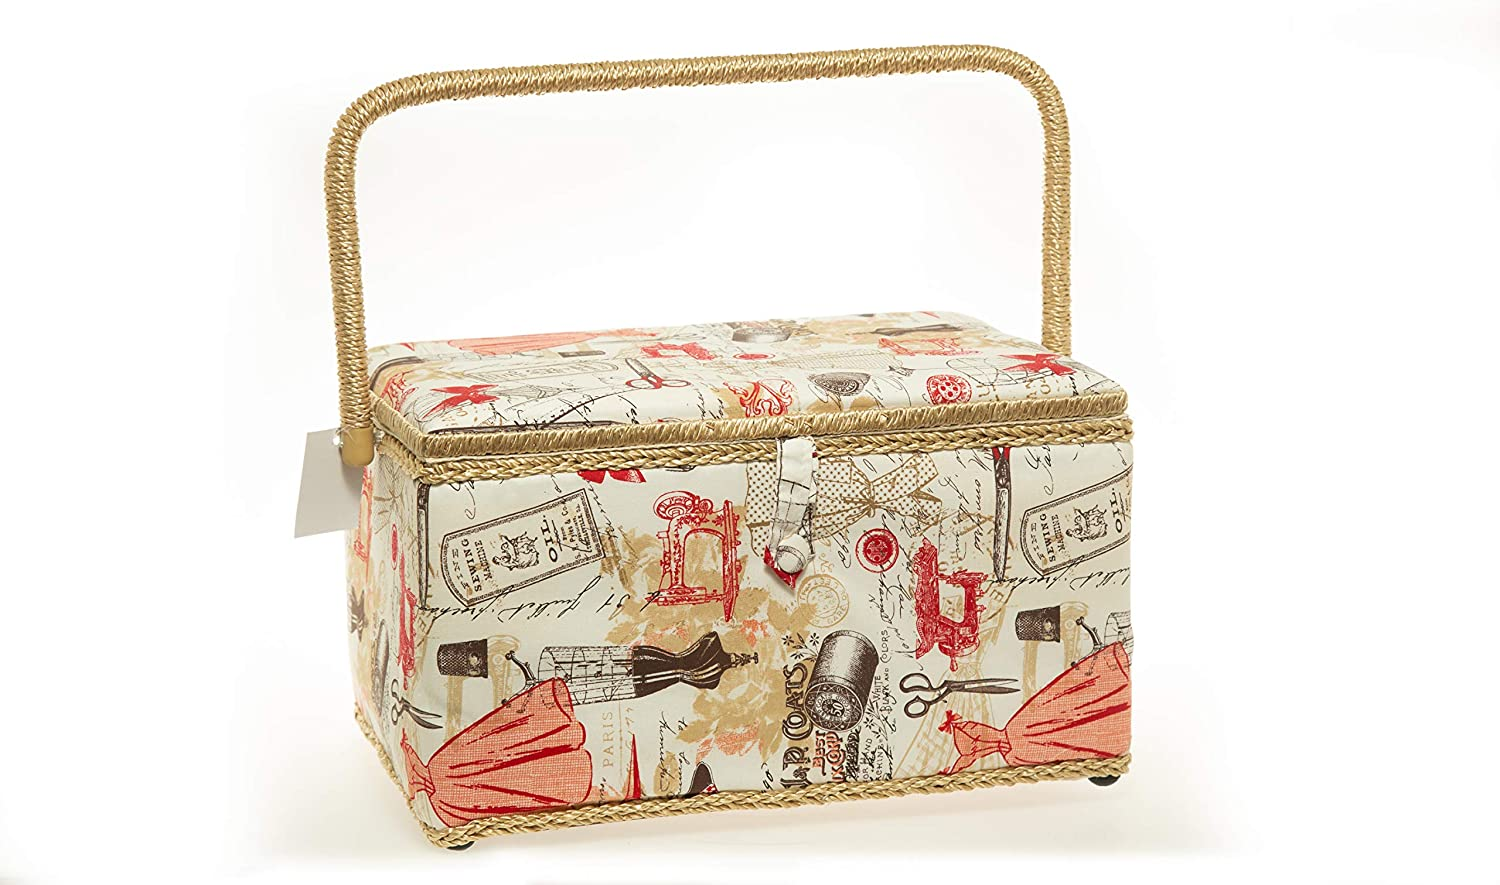 Allary Large Rectangle Sewing Basket with Tray Pincushion 11.5x7x 6.5